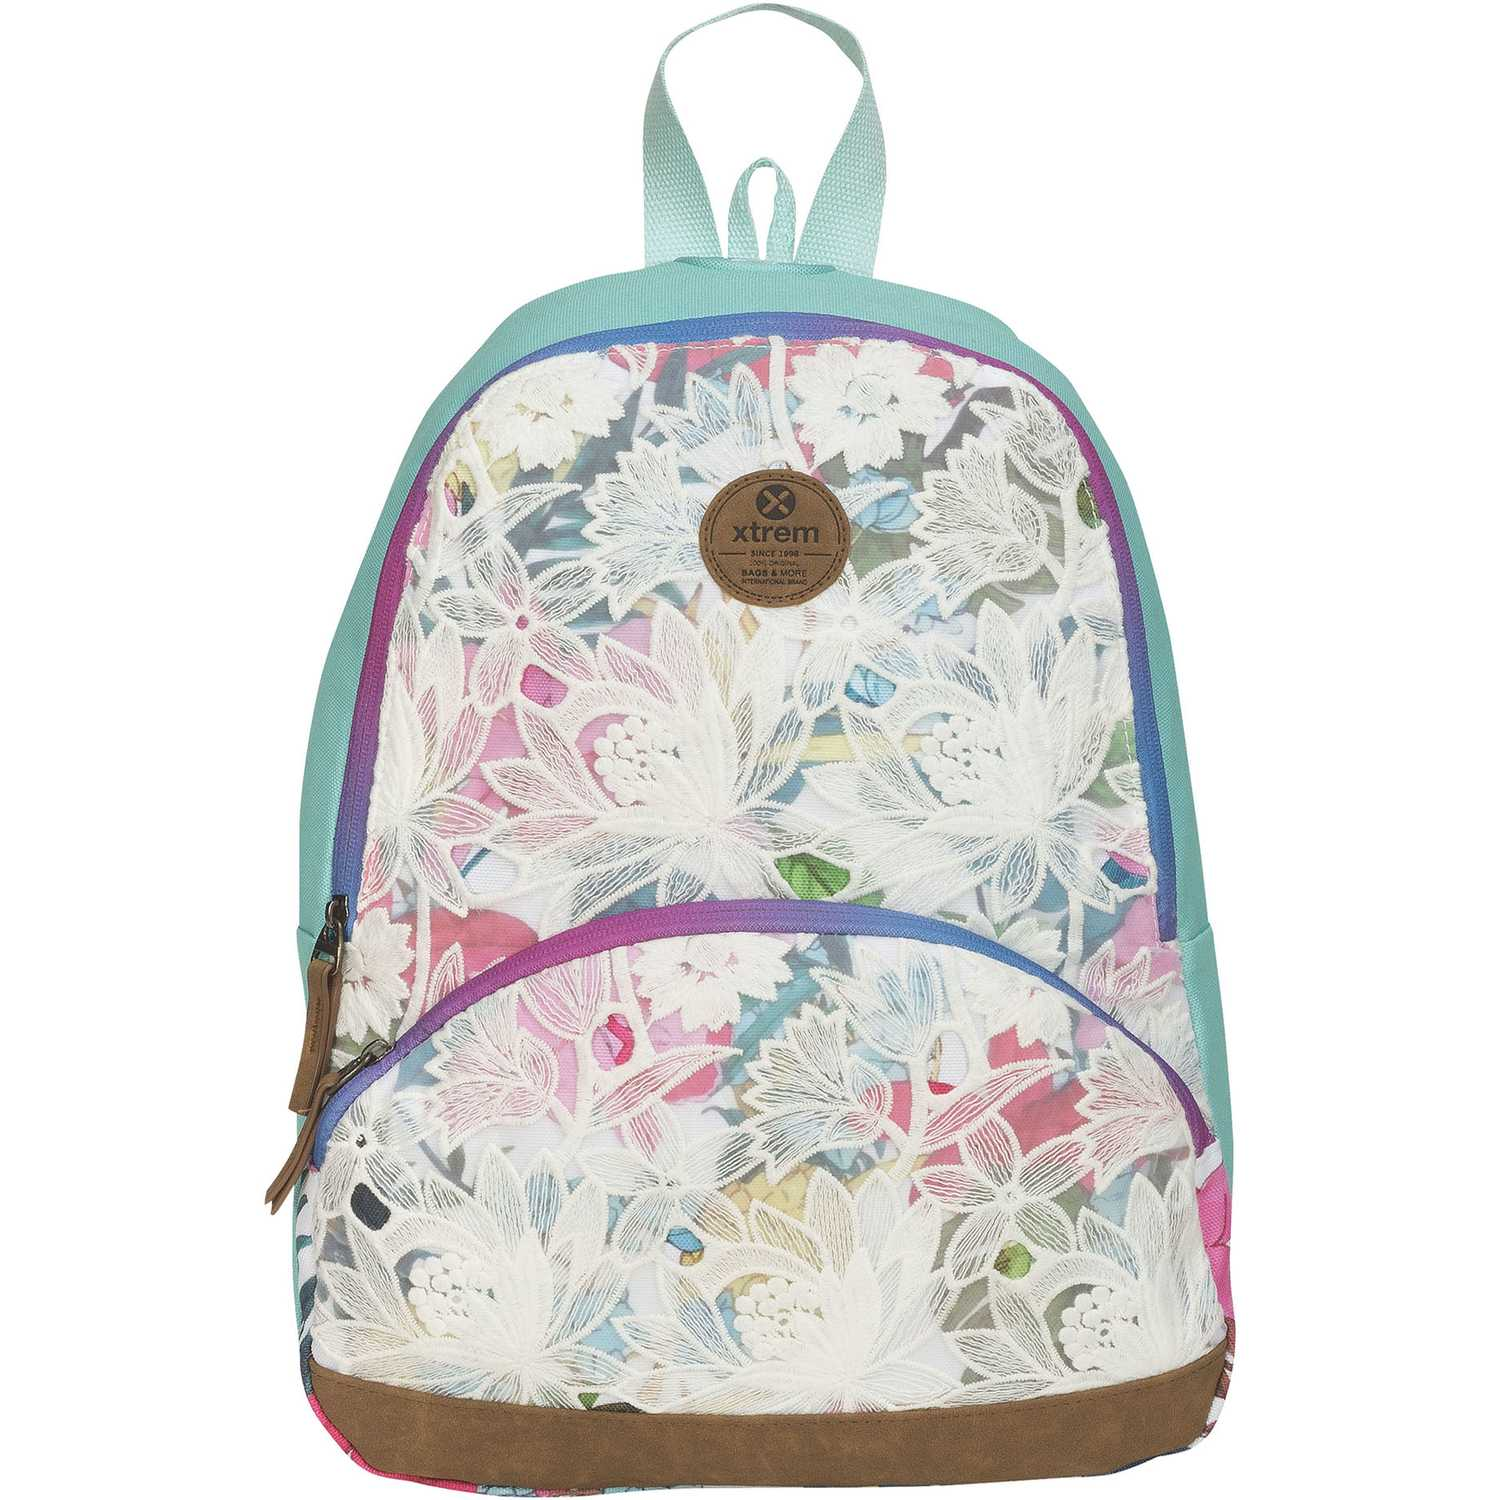 Mochila de Niña Xtrem Blanco / turquesa backpack flower jungle garden 812